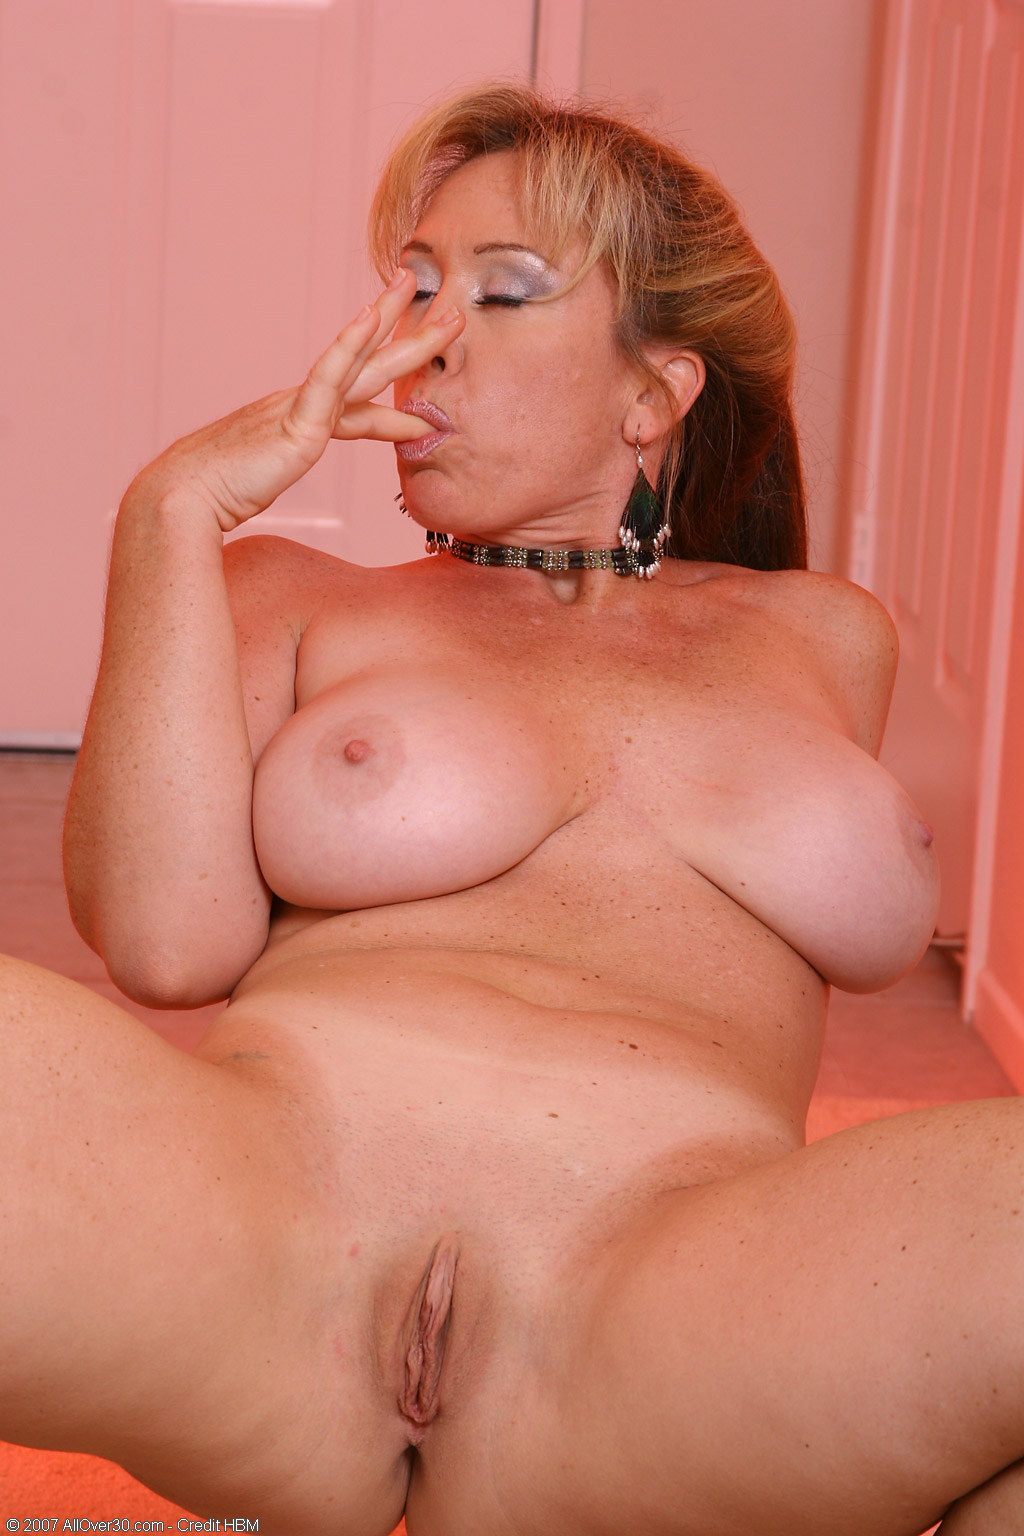 Allover Busty Milf Anita Milfs Over All Over Nude Matures